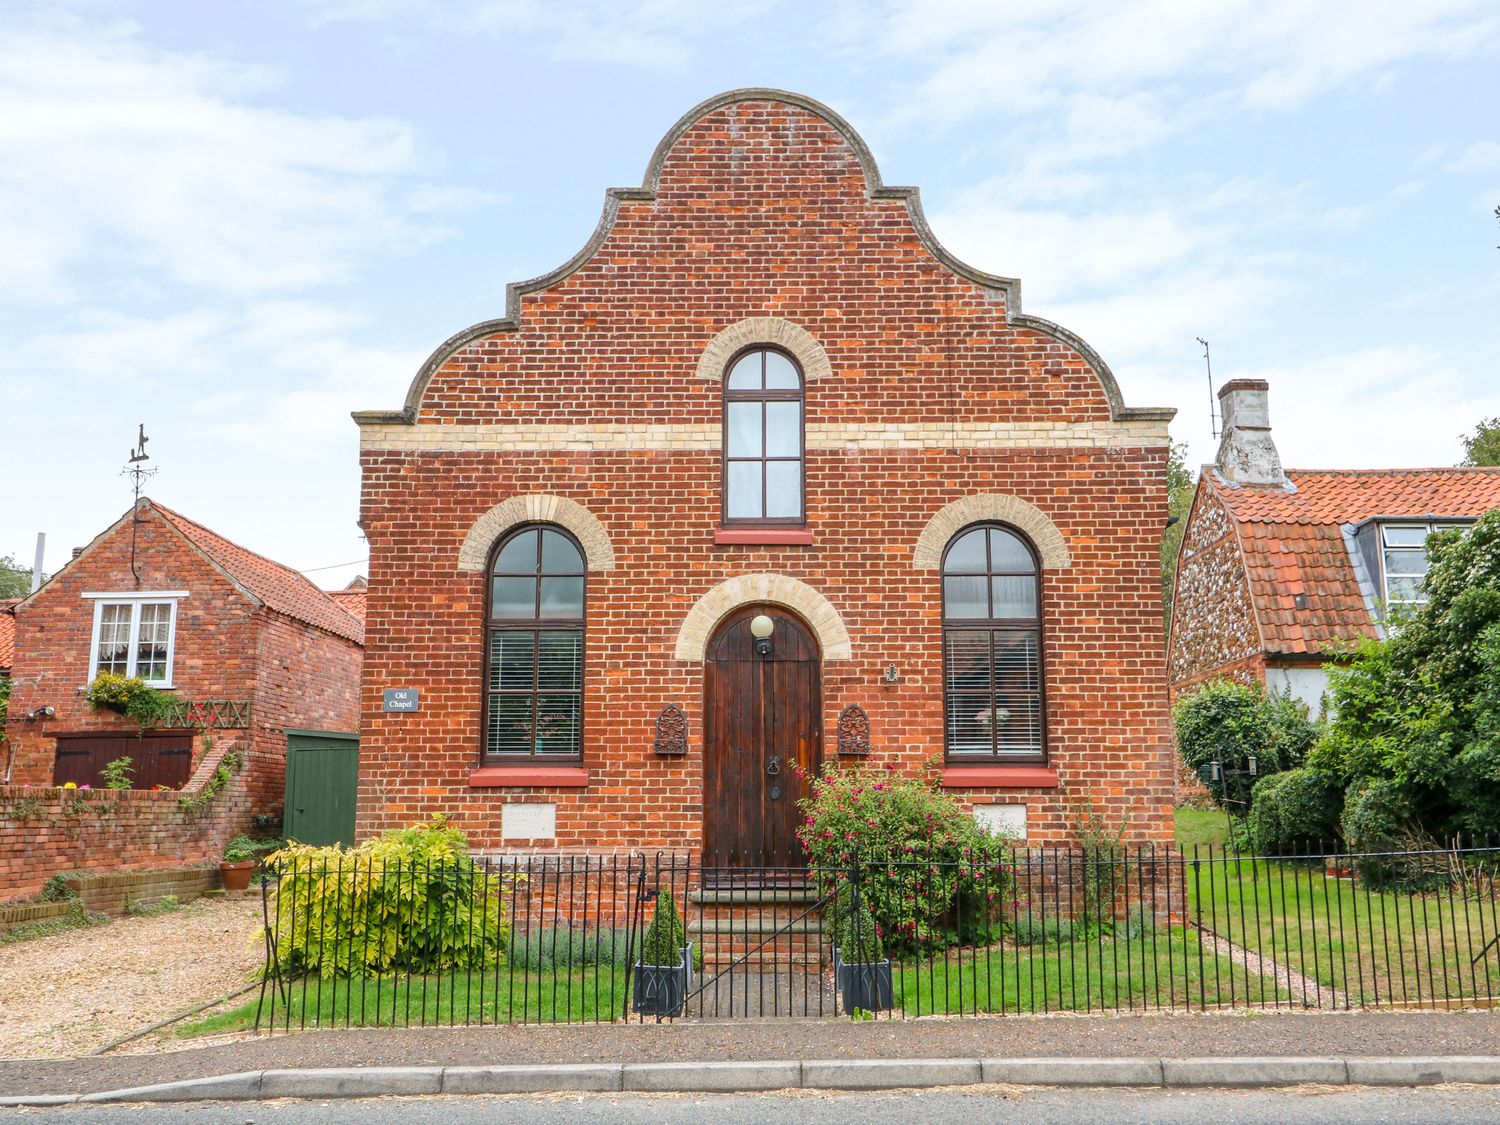 Holiday Cottages in Norfolk: The Old Chapel, Flitcham | Sykes Cottages